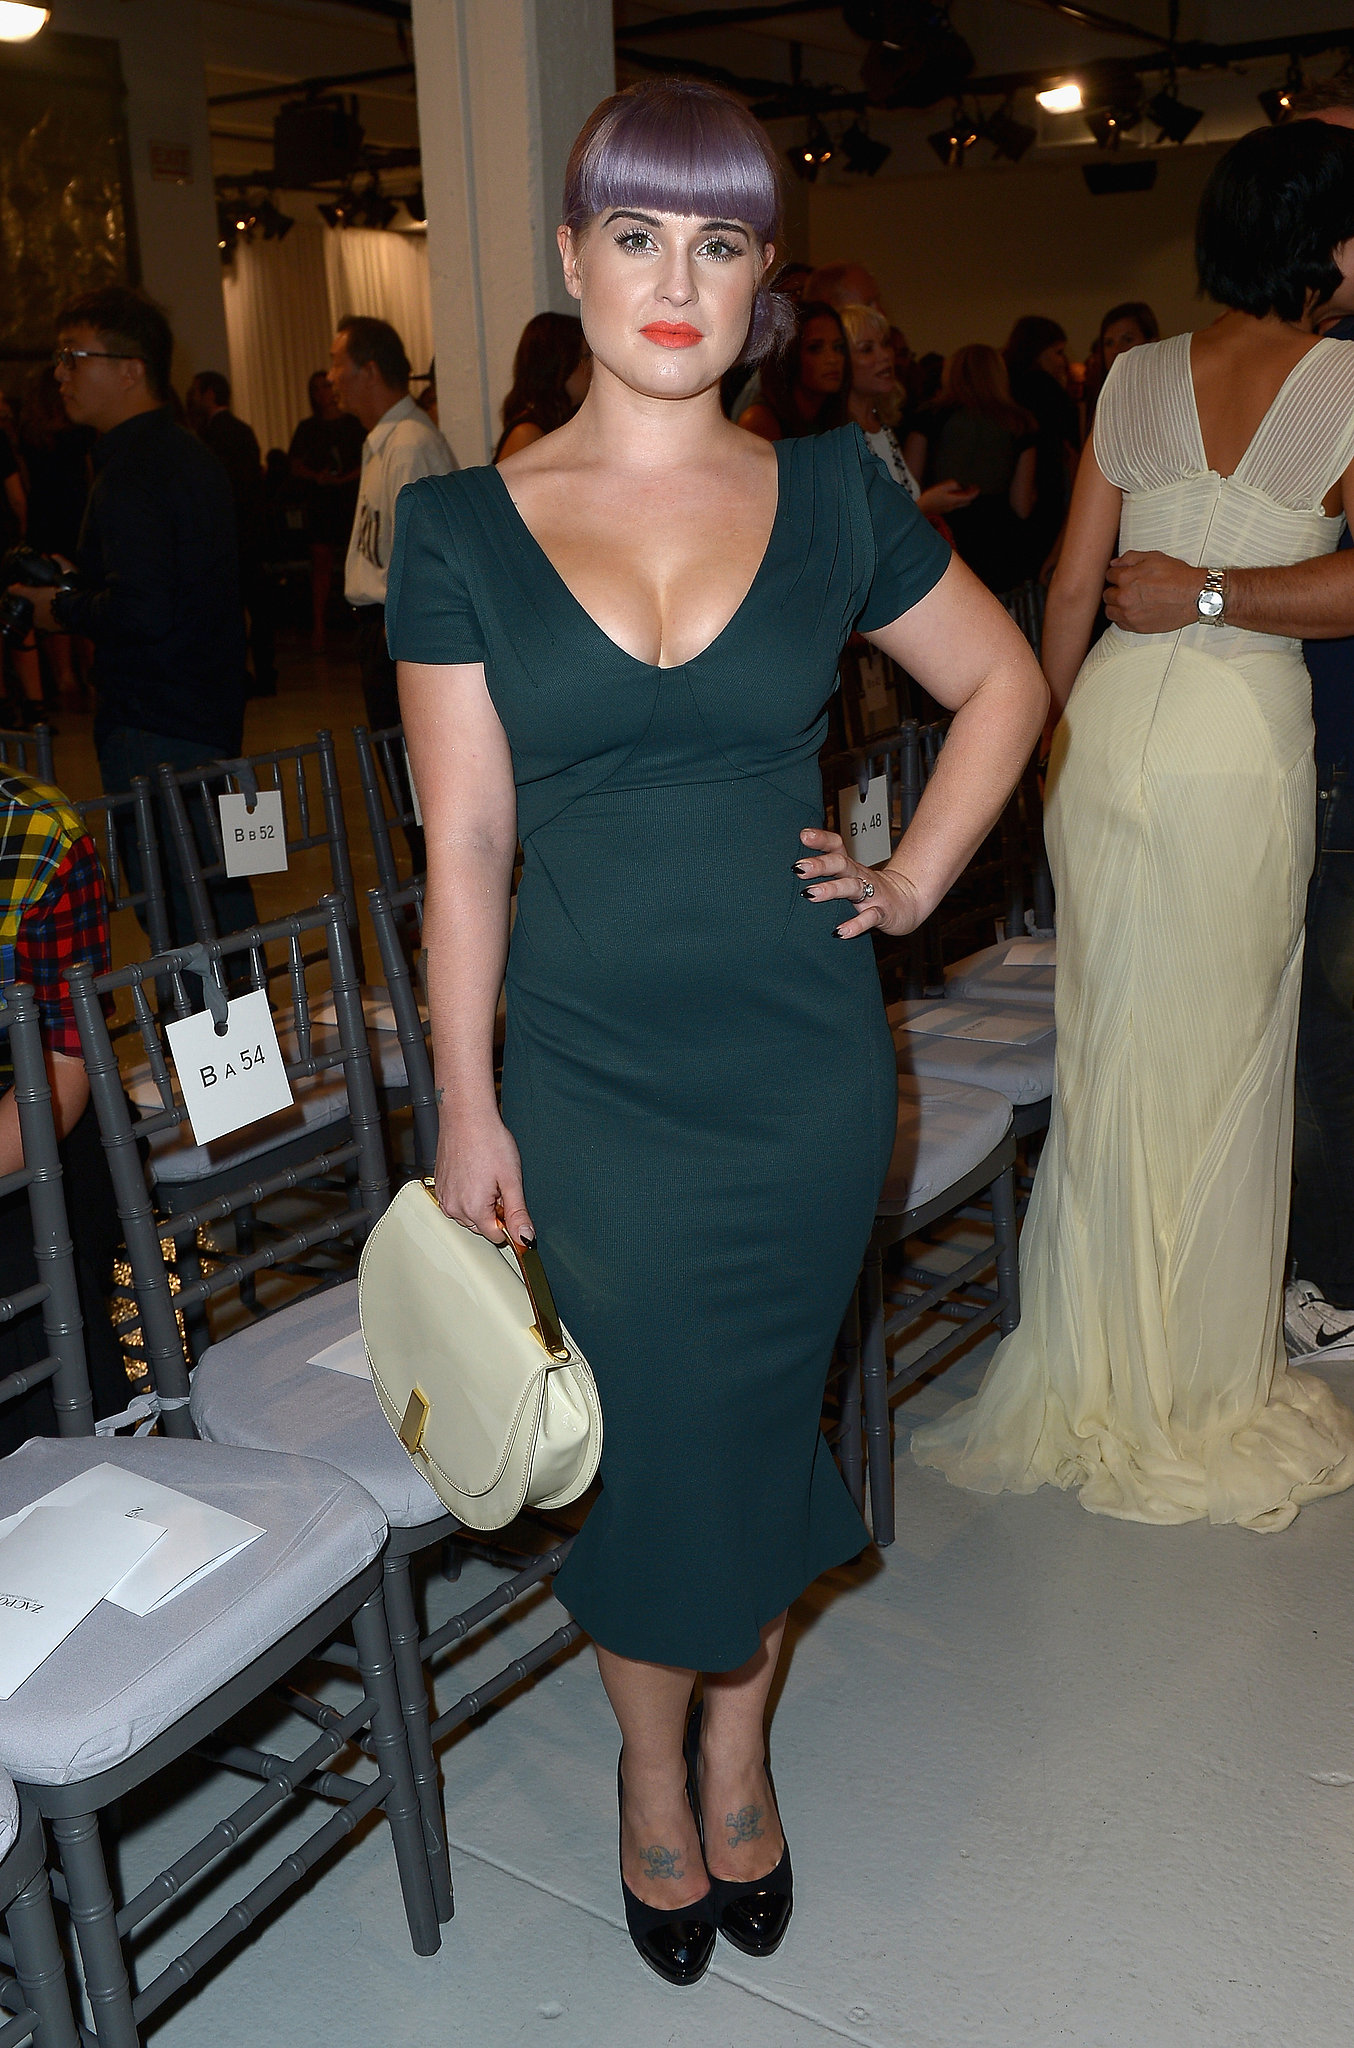 Kelly Osbourne put her figure front and center in a green formfitting shift dress at Zac Posen. A mint bag added a fun color contrast.